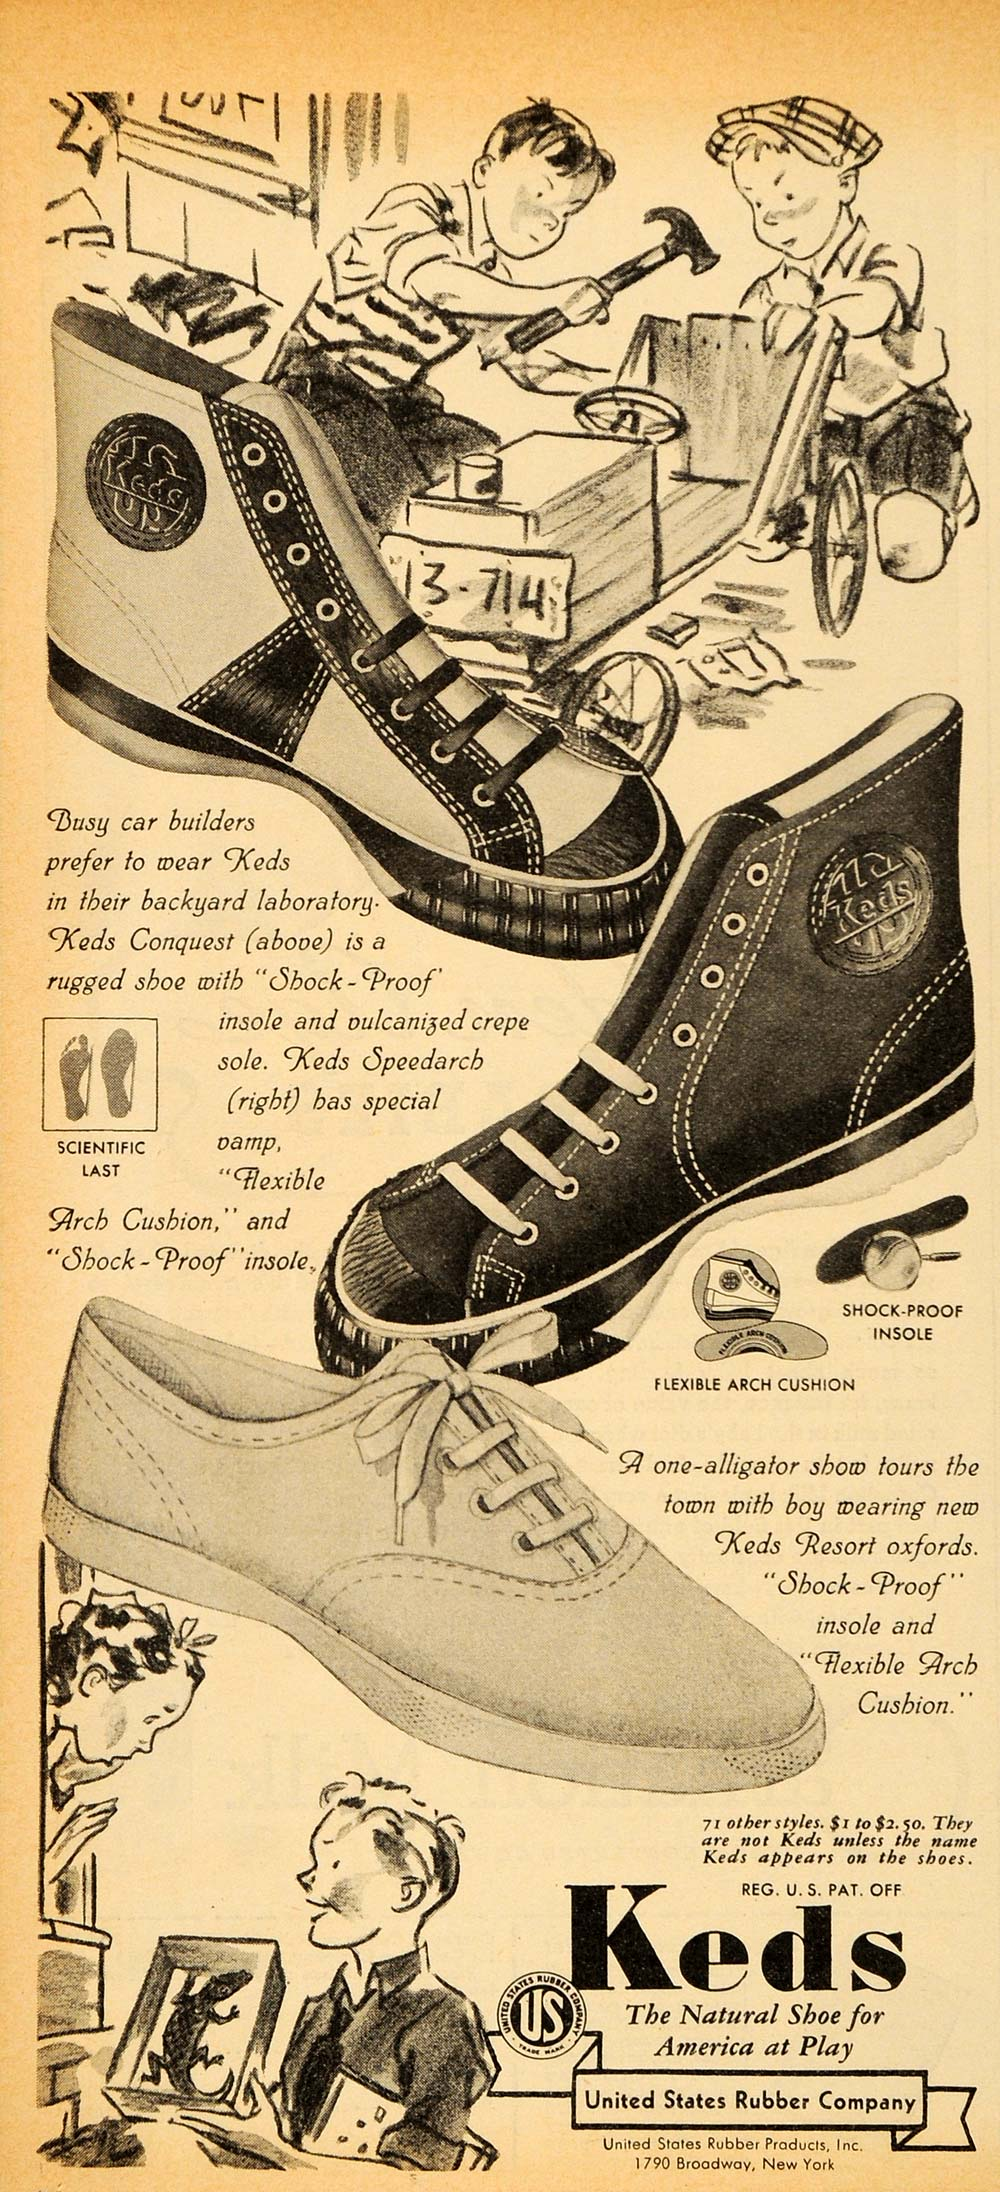 1937 Vintage Ad Keds Shoes Sneakers Conquest Speedarch - ORIGINAL PTS1